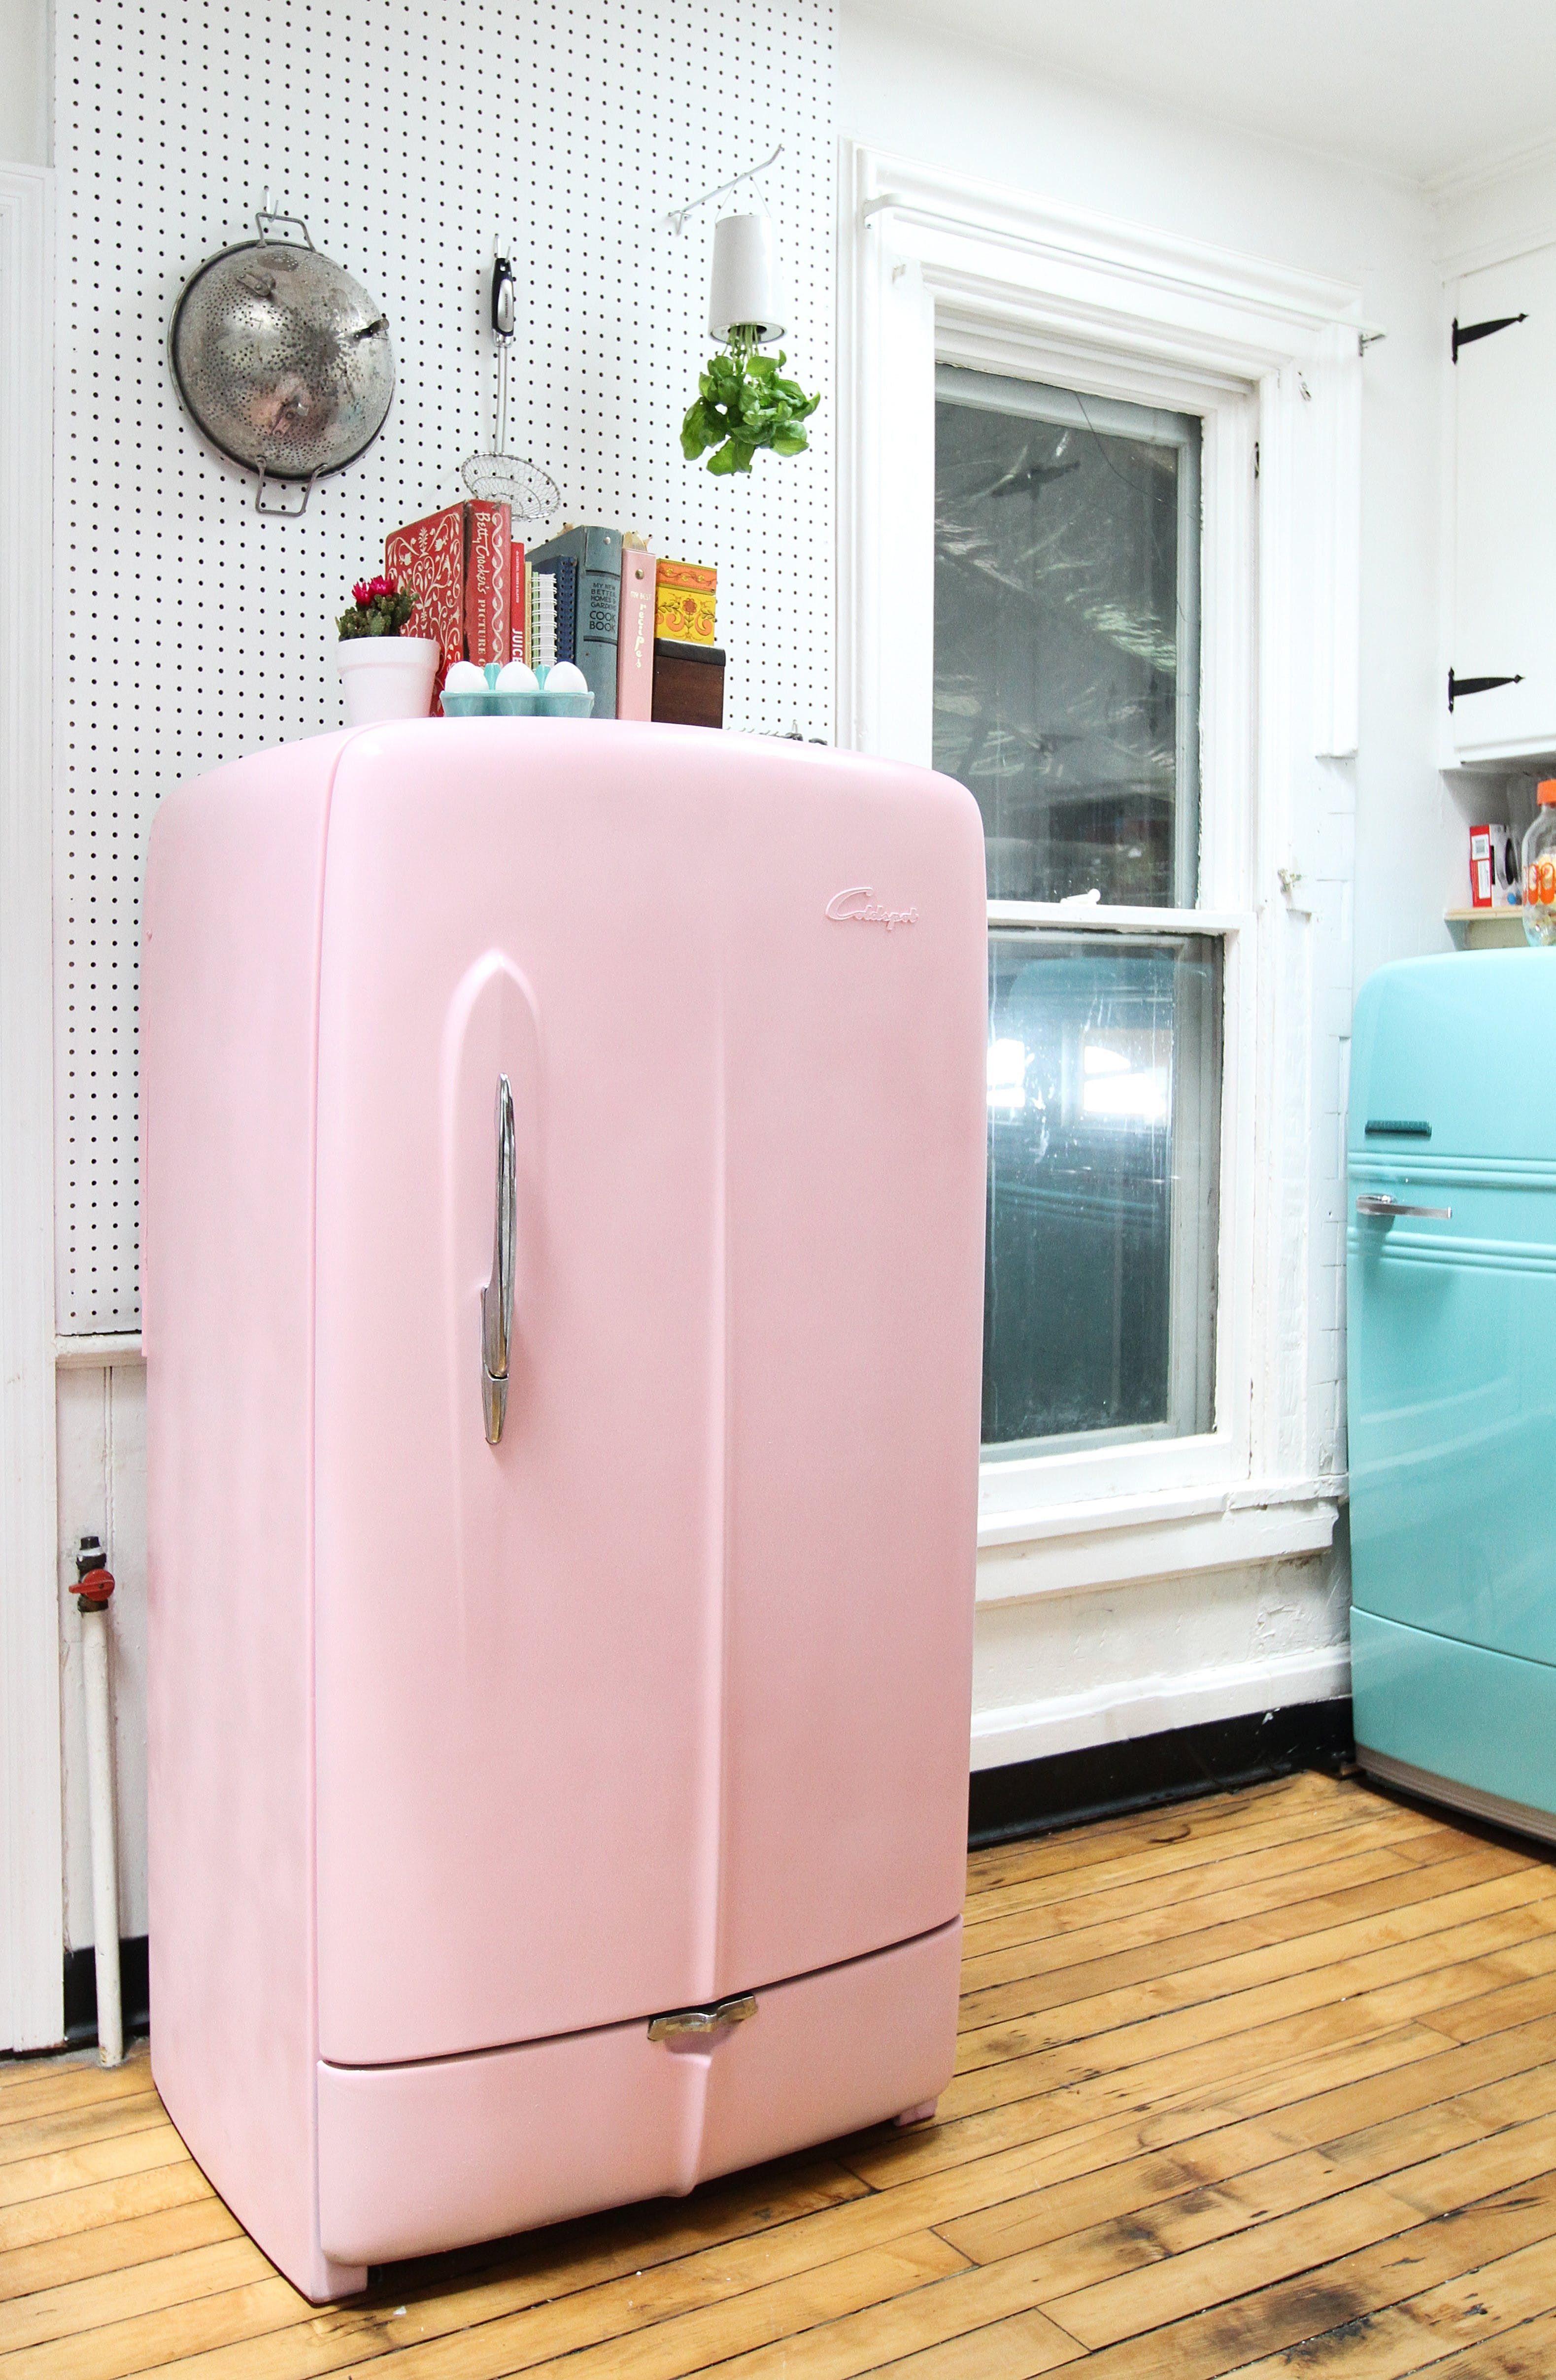 How To Paint A Refrigerator Tips & Photo Tutorial